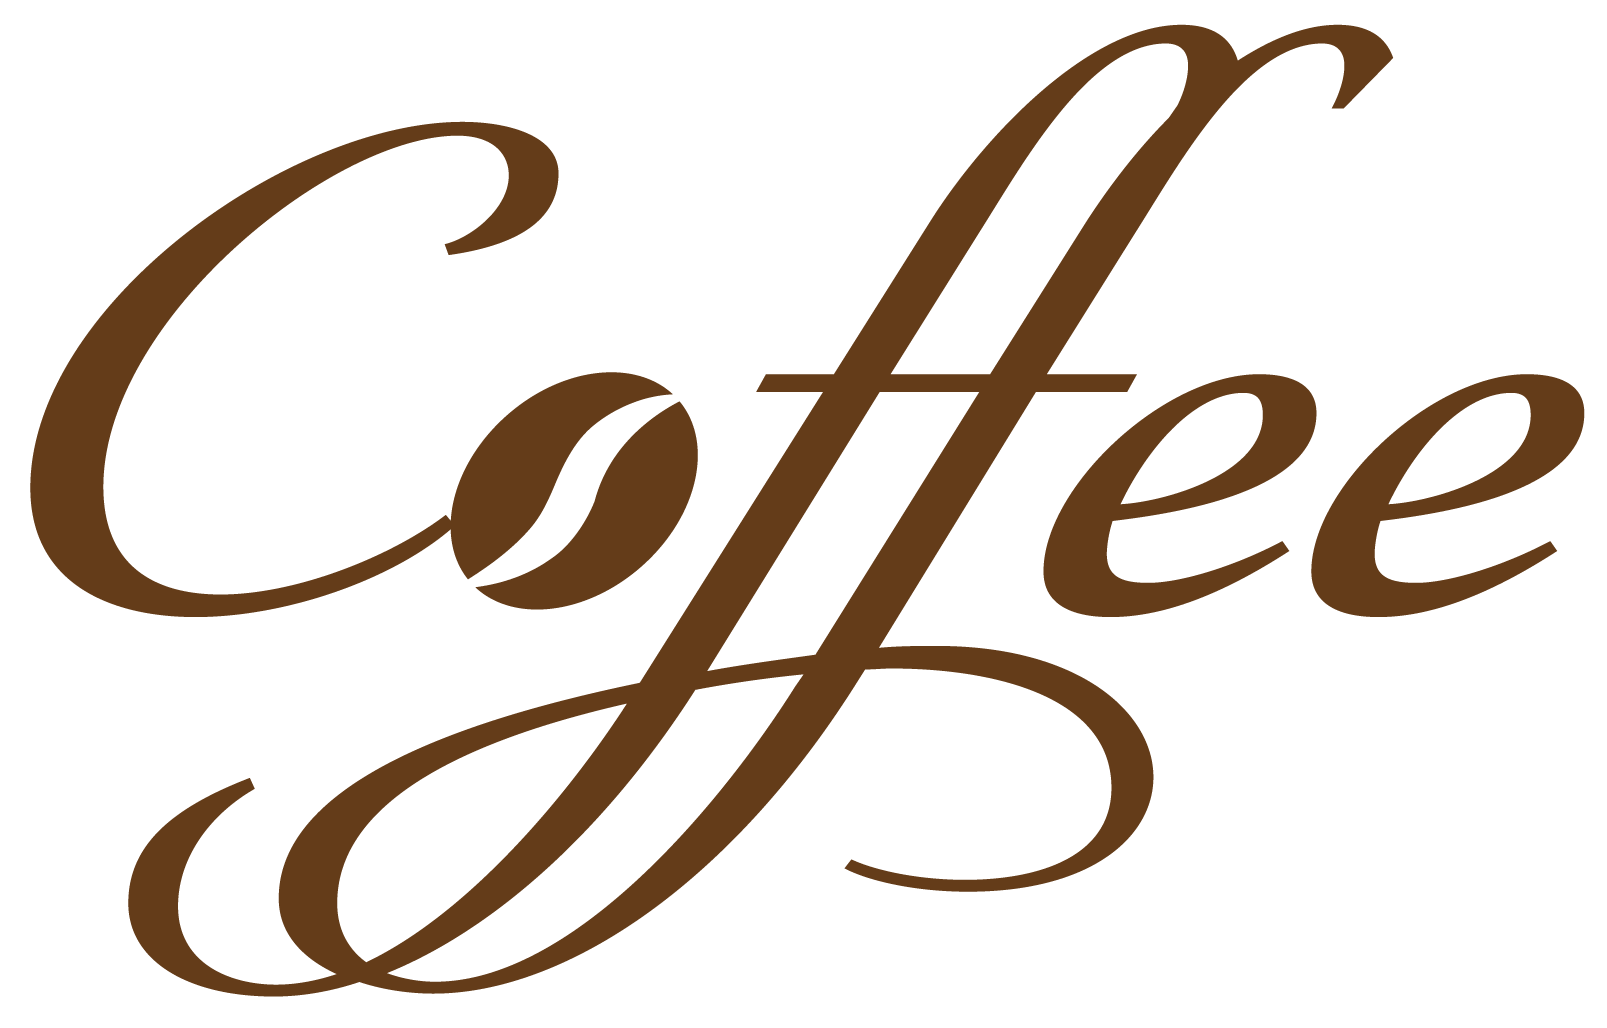 Horse whip high definition png. Coffee decorative text vector